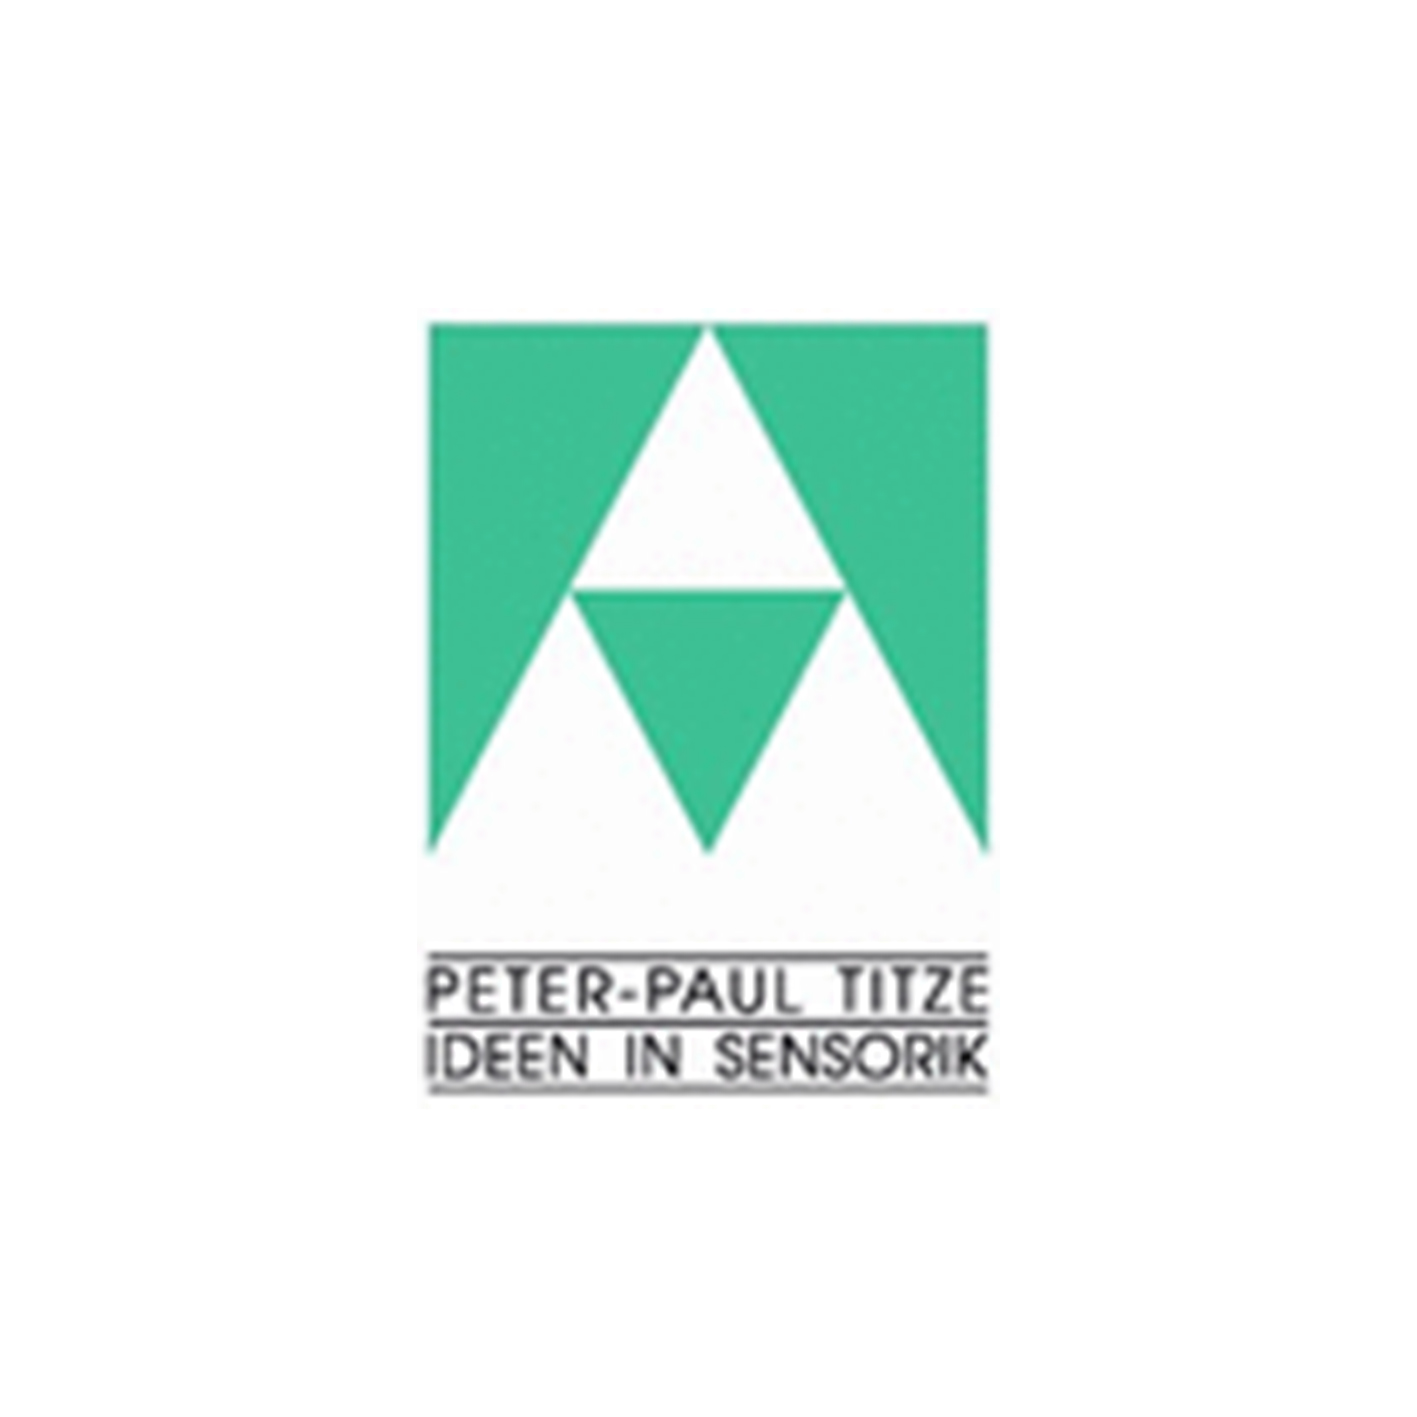 Peter-Paul Titze